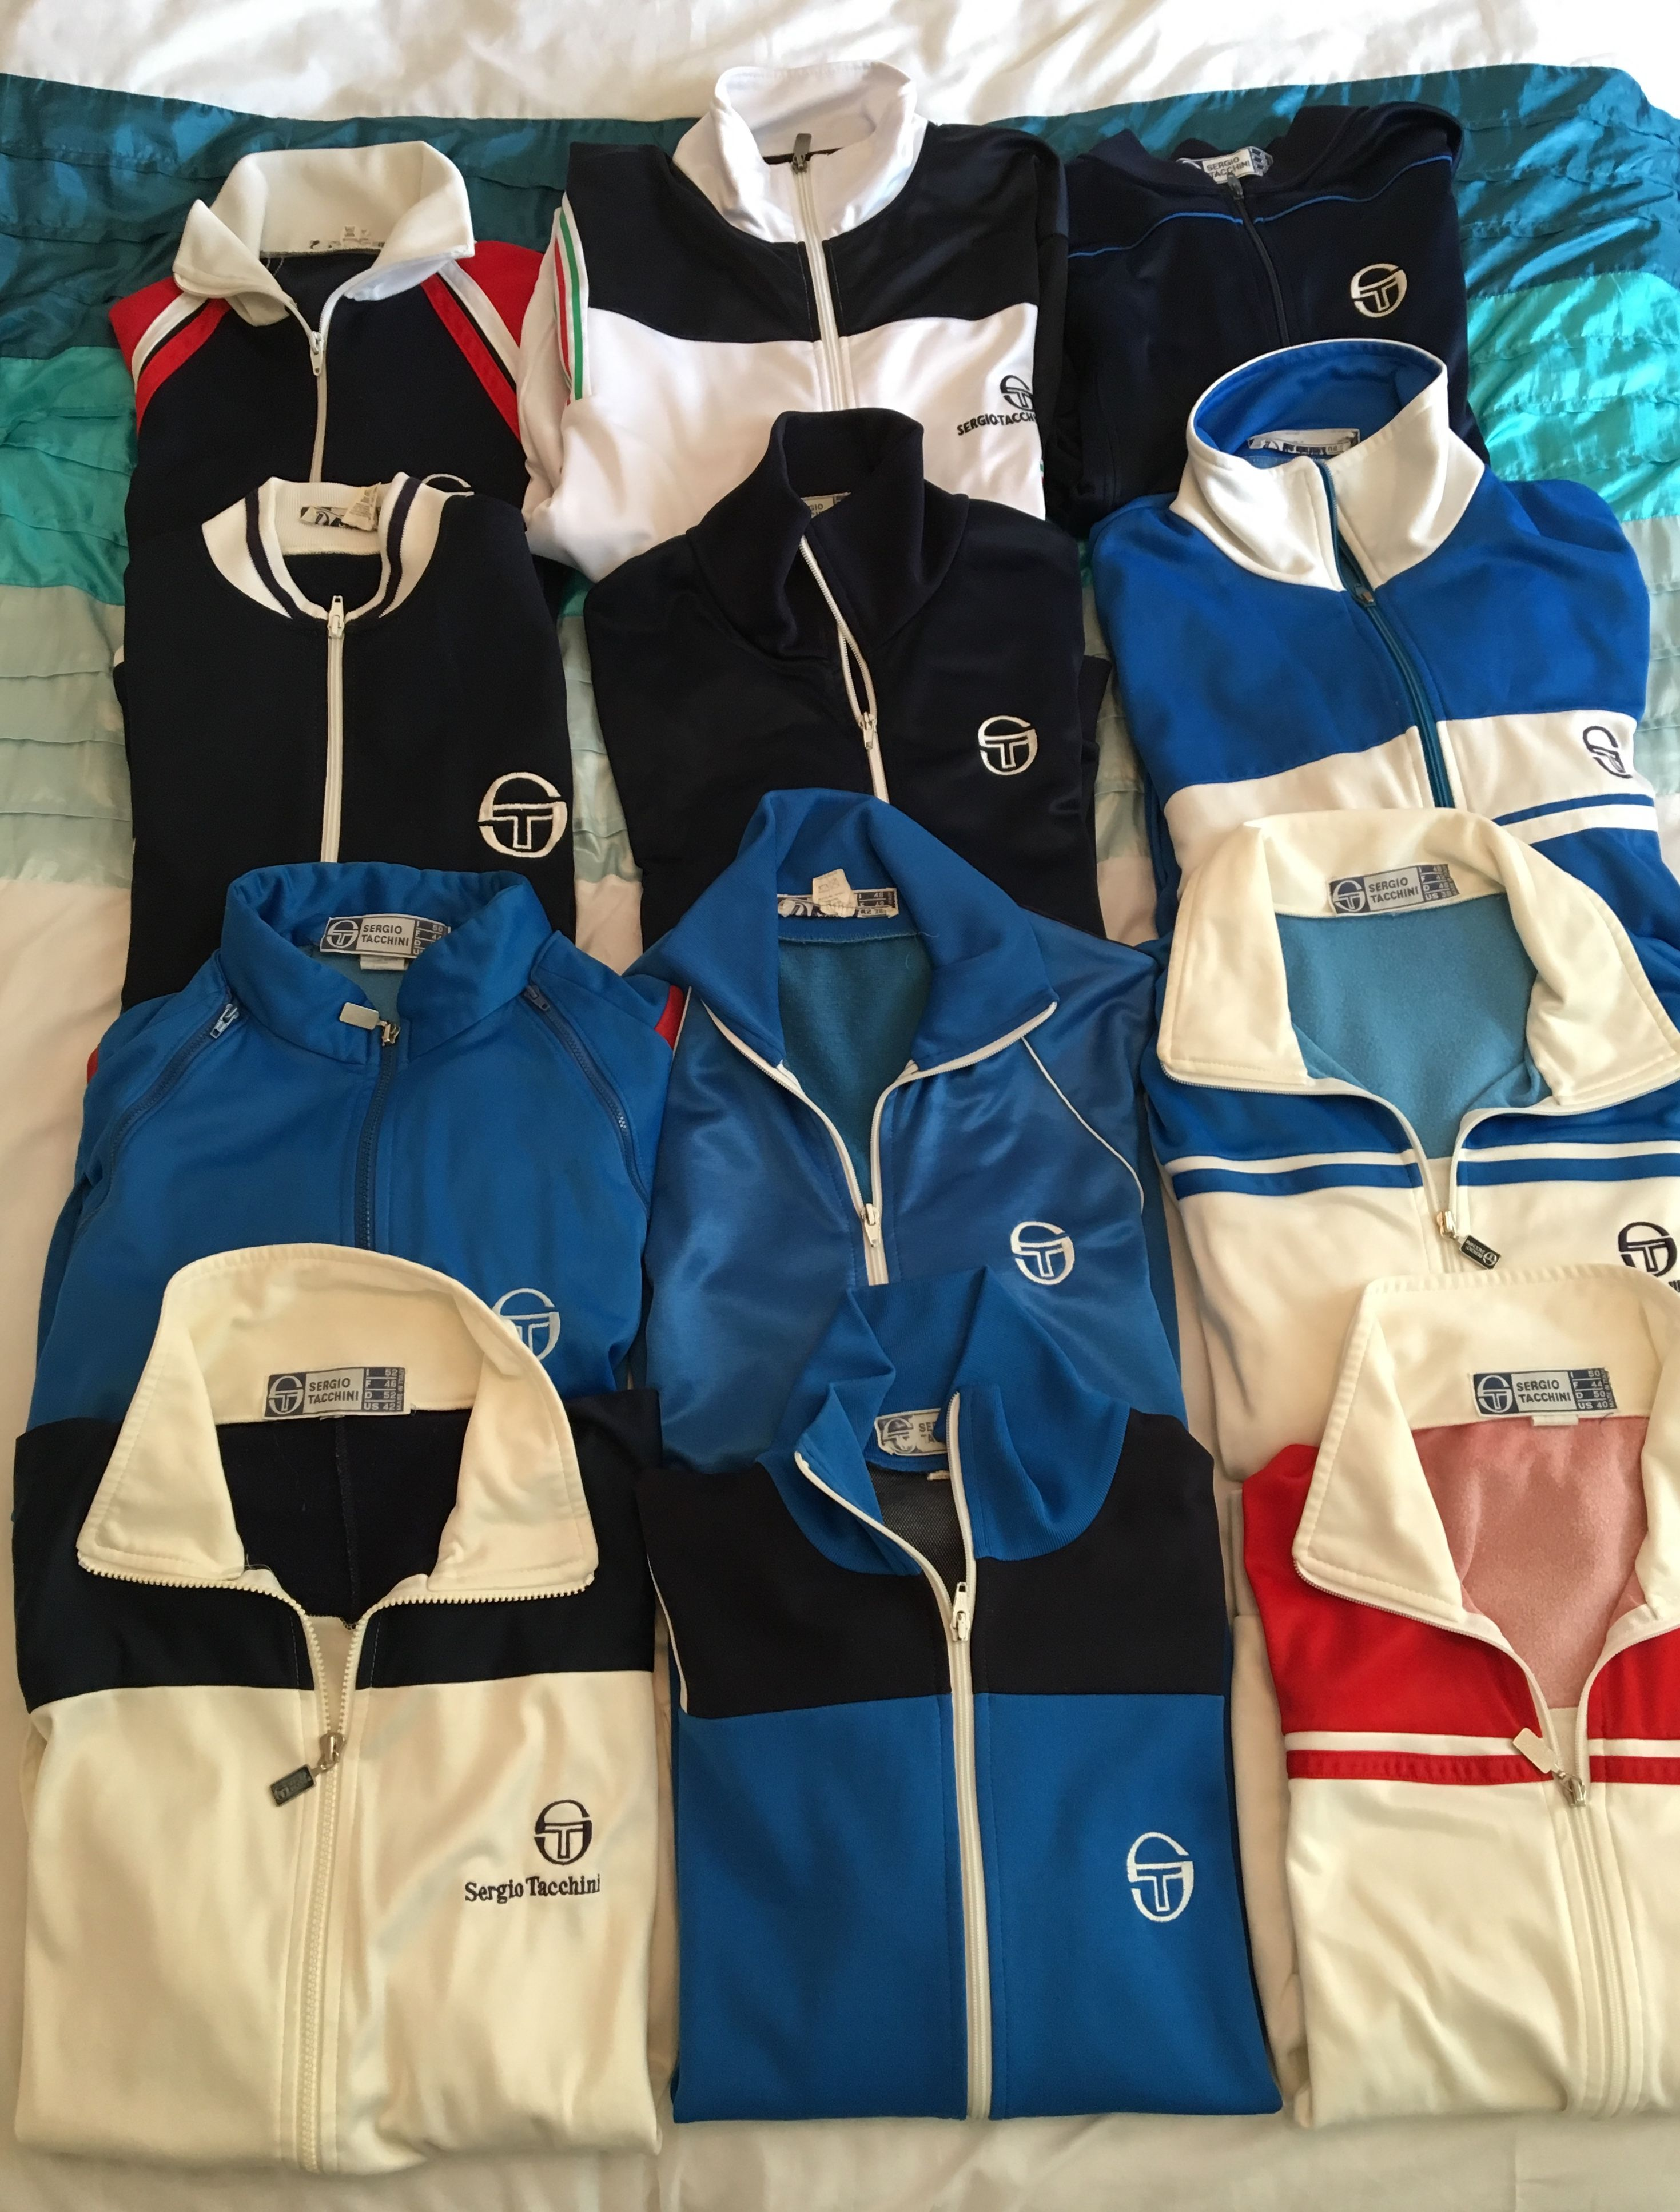 OG sergio Tacchini - Sale! Up to 75% OFF! Shop at Stylizio for women s and  men s designer handbags 776a3380e